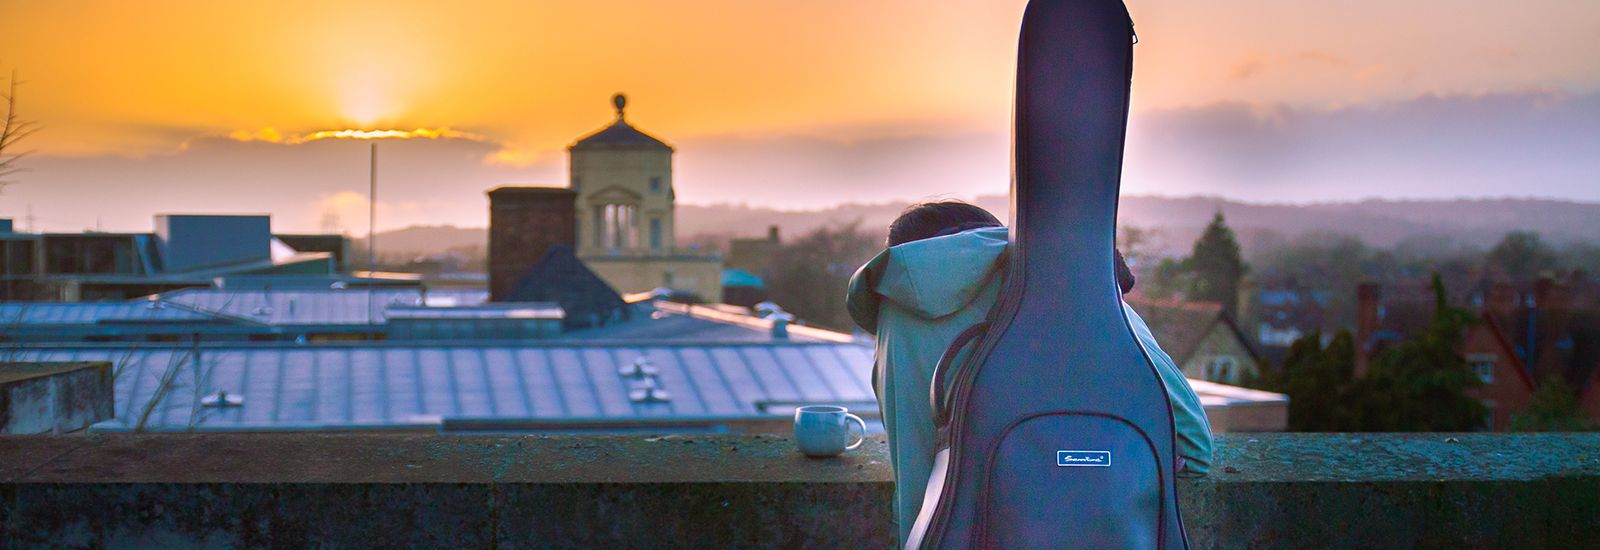 Student with a guitar case looking at rooftops at sunset